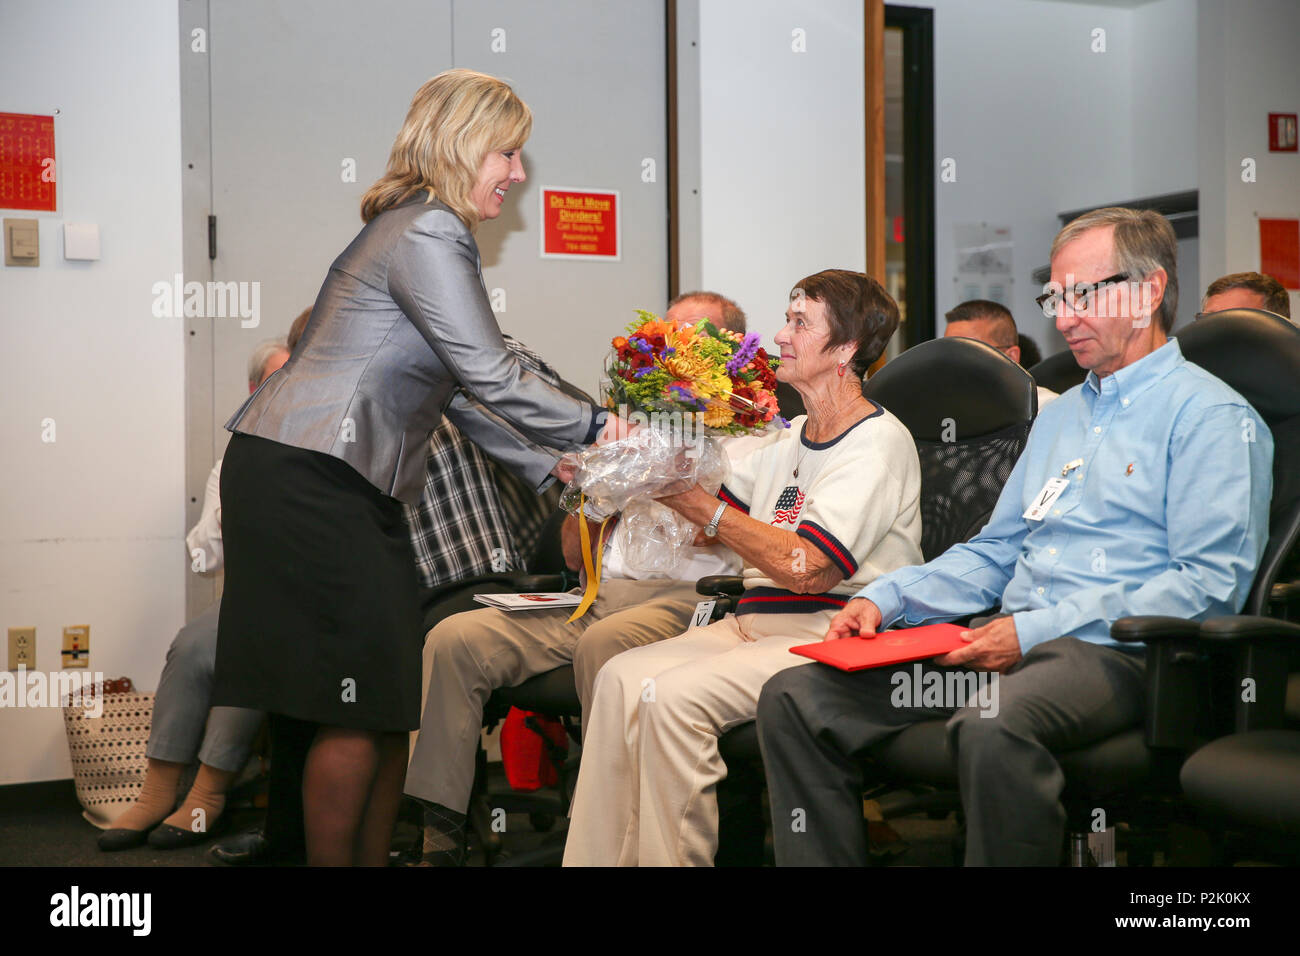 Ms. Kelly F. Sims gives a bouquet of flowers to a family member of Mrs. Marla Rankin during Rankin's retirement on Marine Corps Base Quantico, Va., Sept. 29, 2016. Rankin served 32 honorable years of civilian service. (U.S. Marine Corps photo by Lance Cpl. Cristian L. Ricardo) - Stock Image